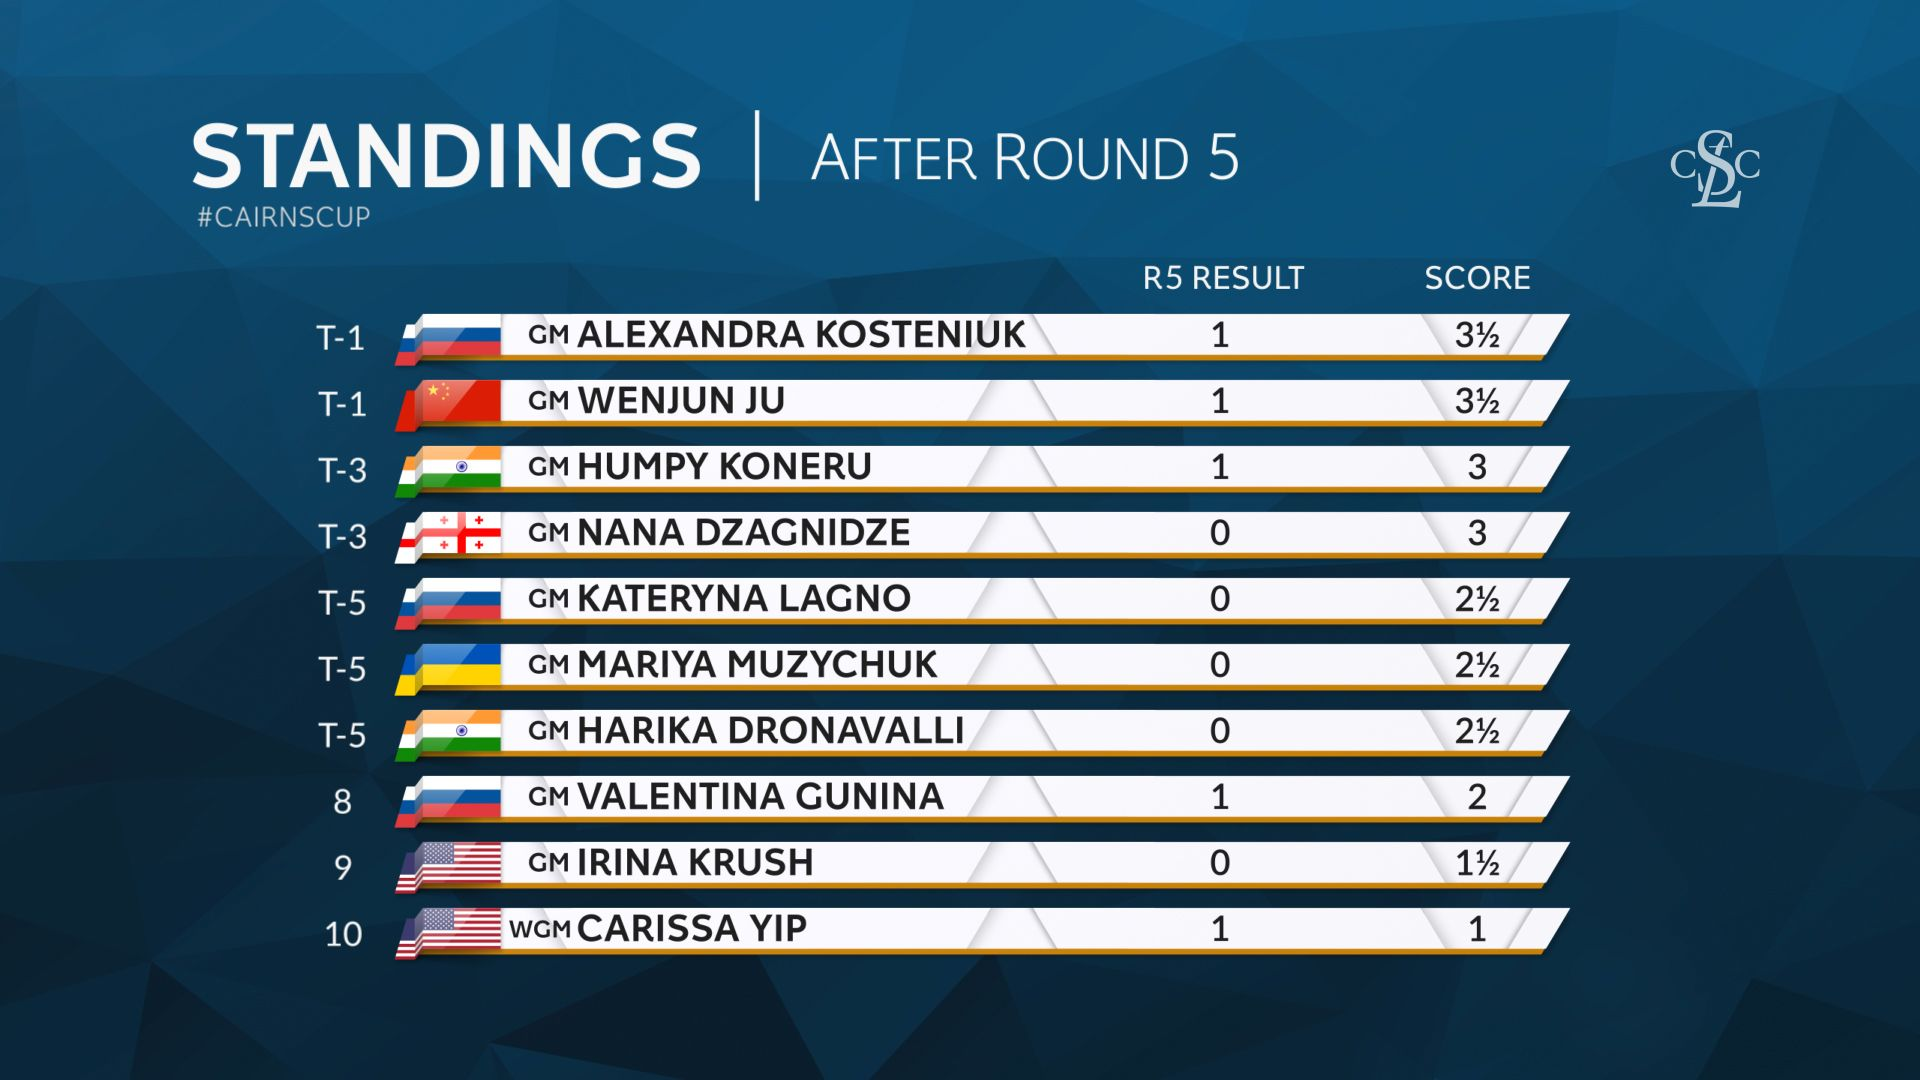 The standings after the fifth round. Cairns Cup